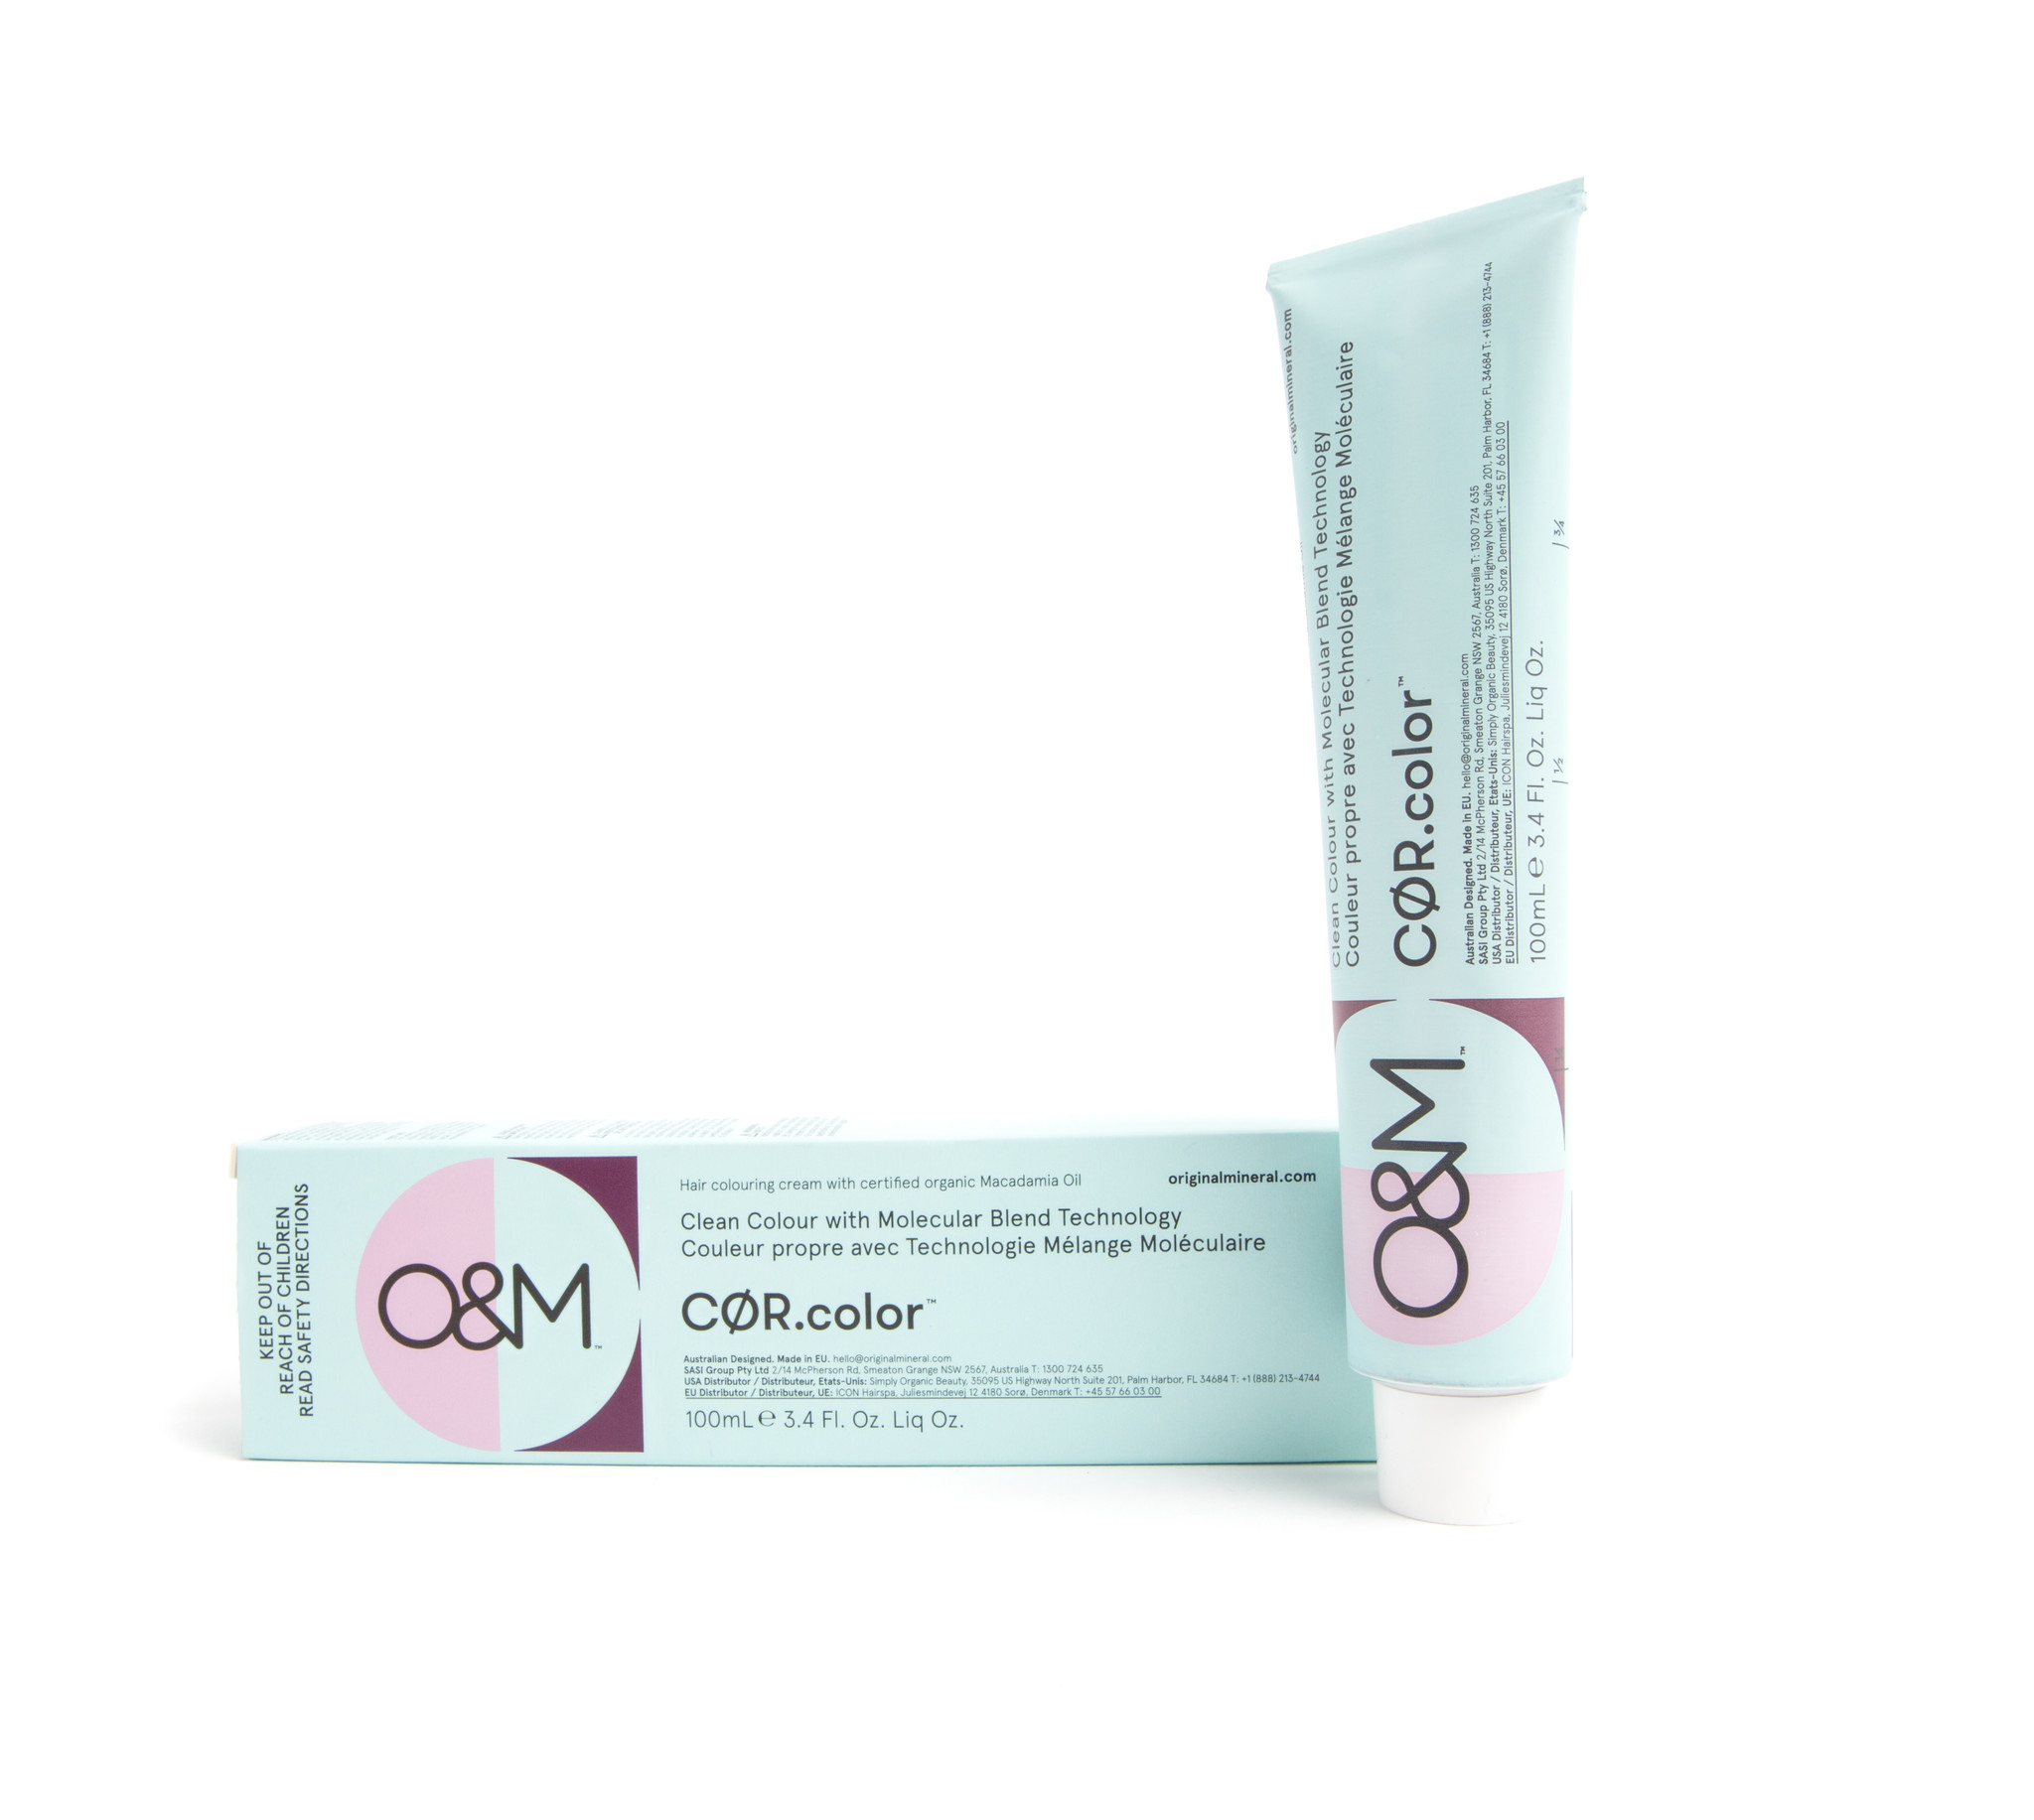 O&M - Original Mineral O&M CØR.color Copper Blonde 7.4 100g